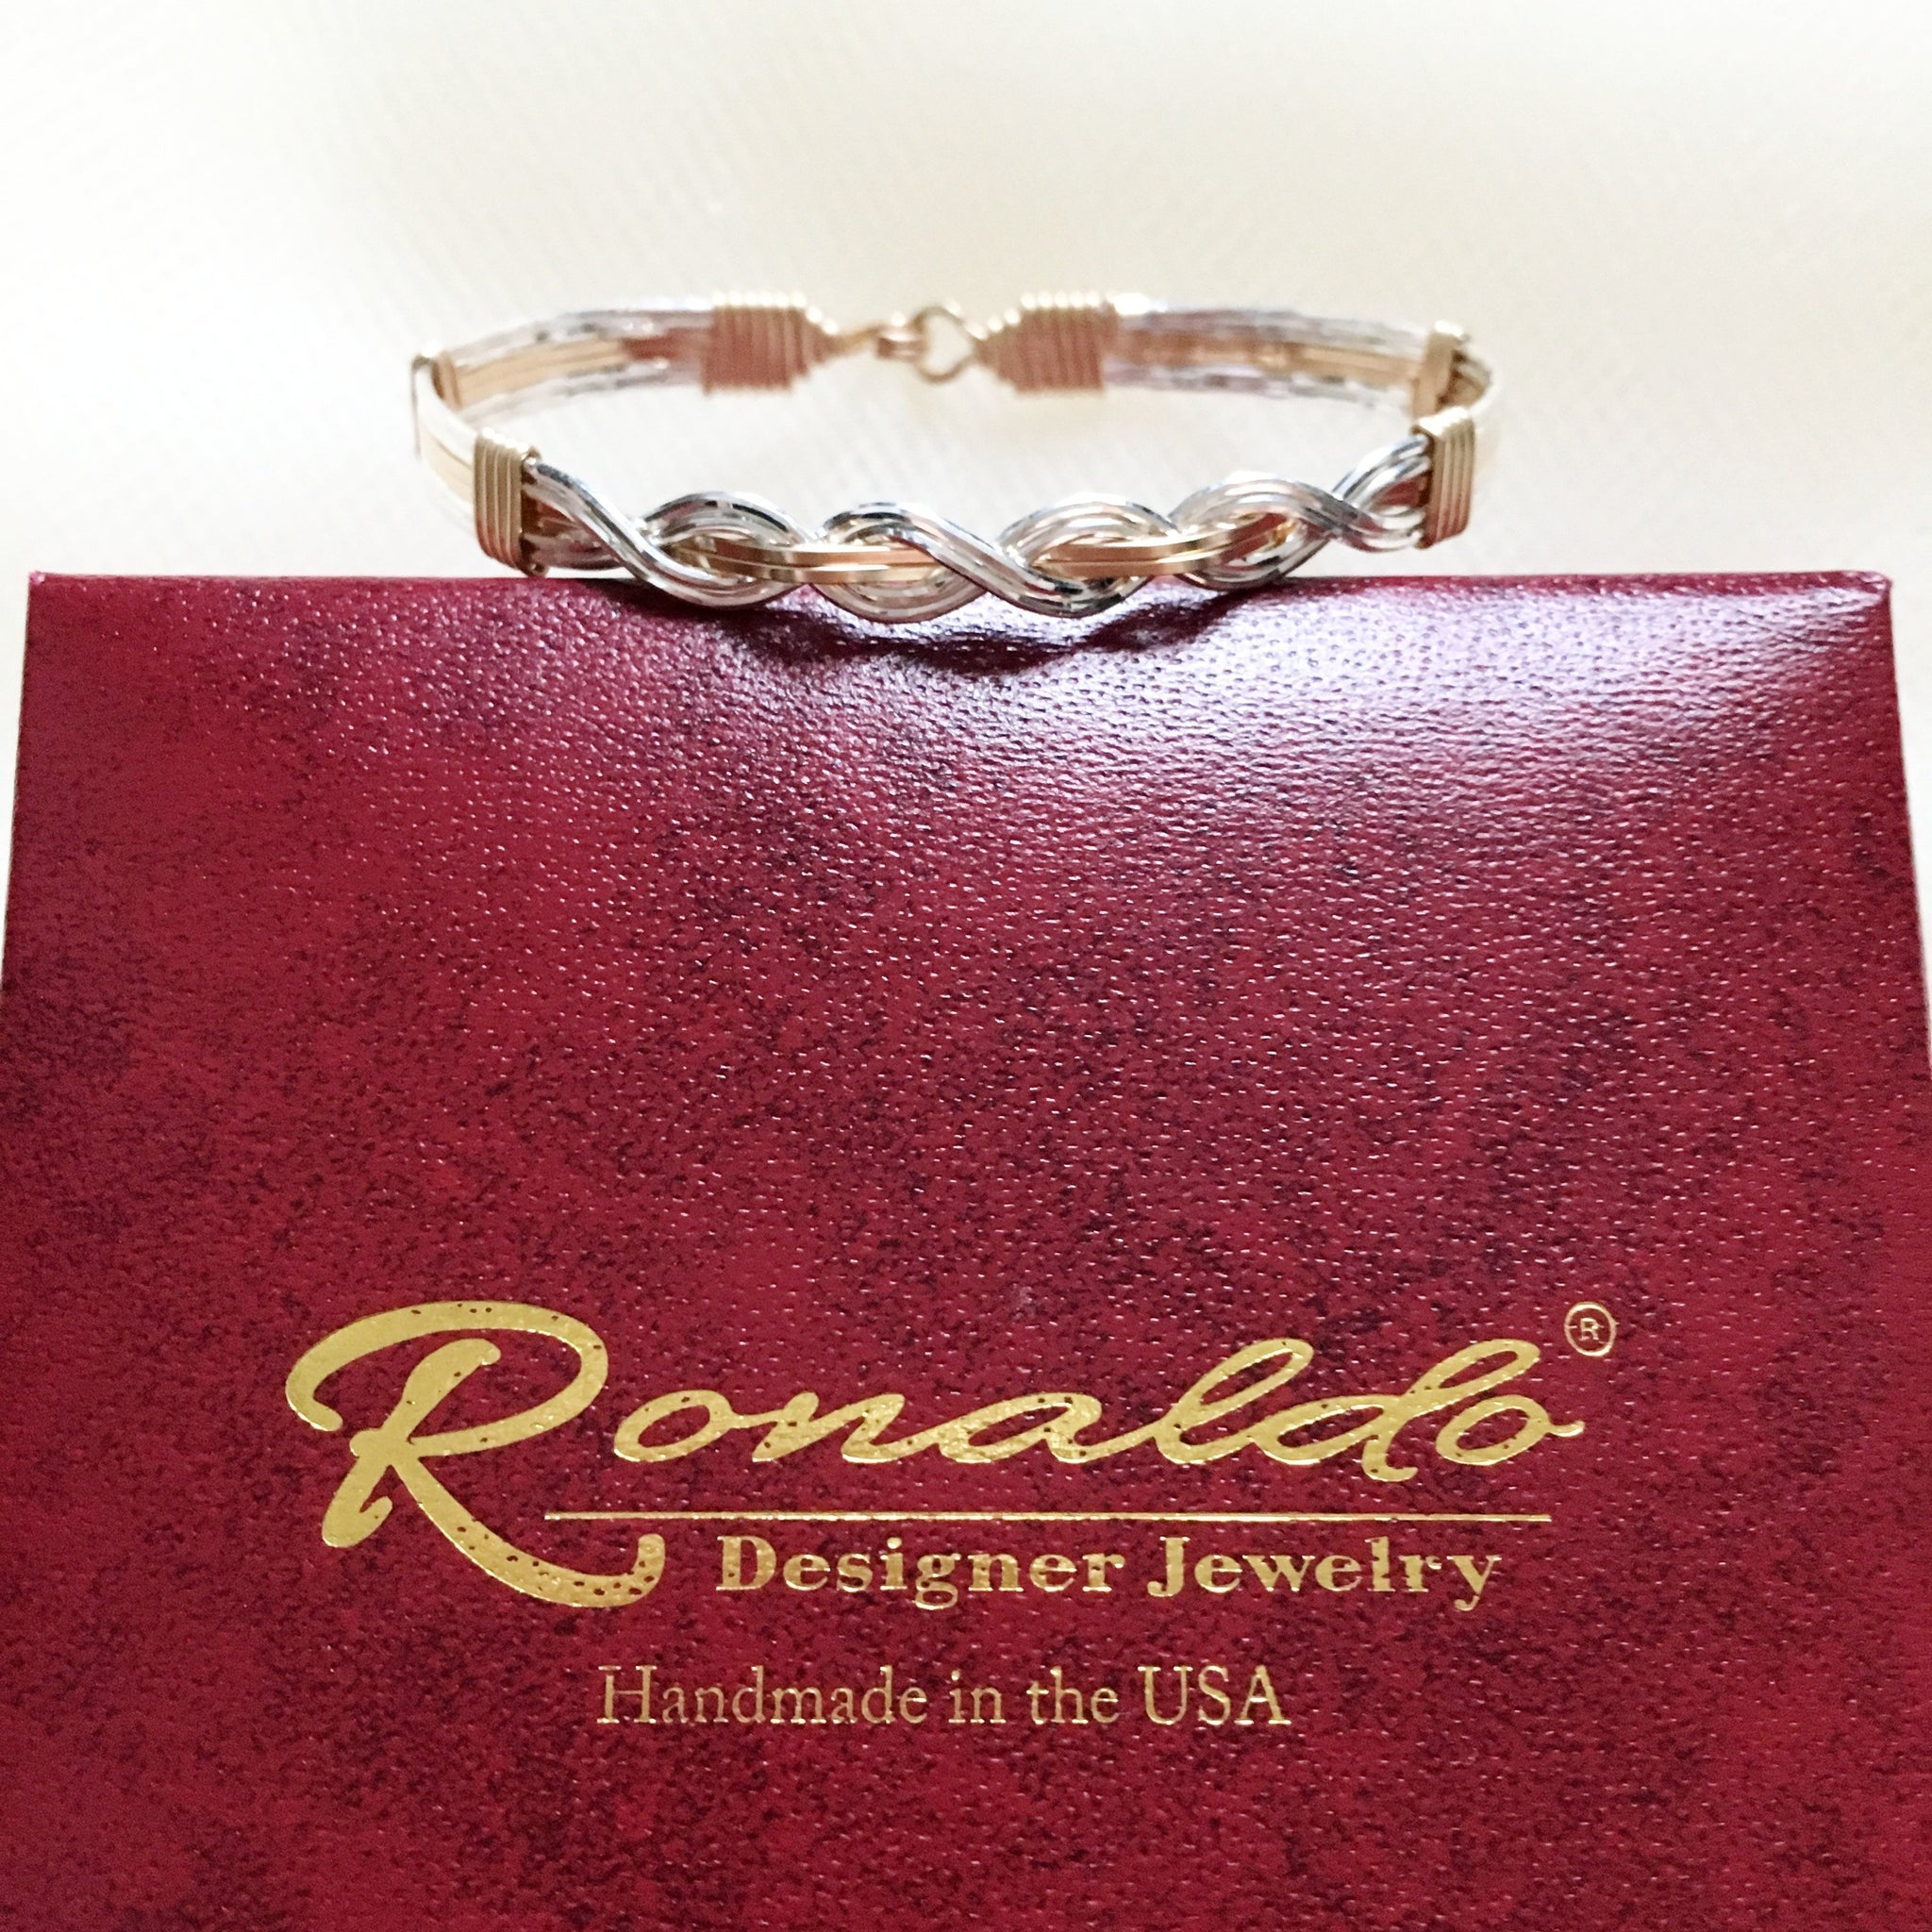 Ronaldo To the Moon and Back Bracelet